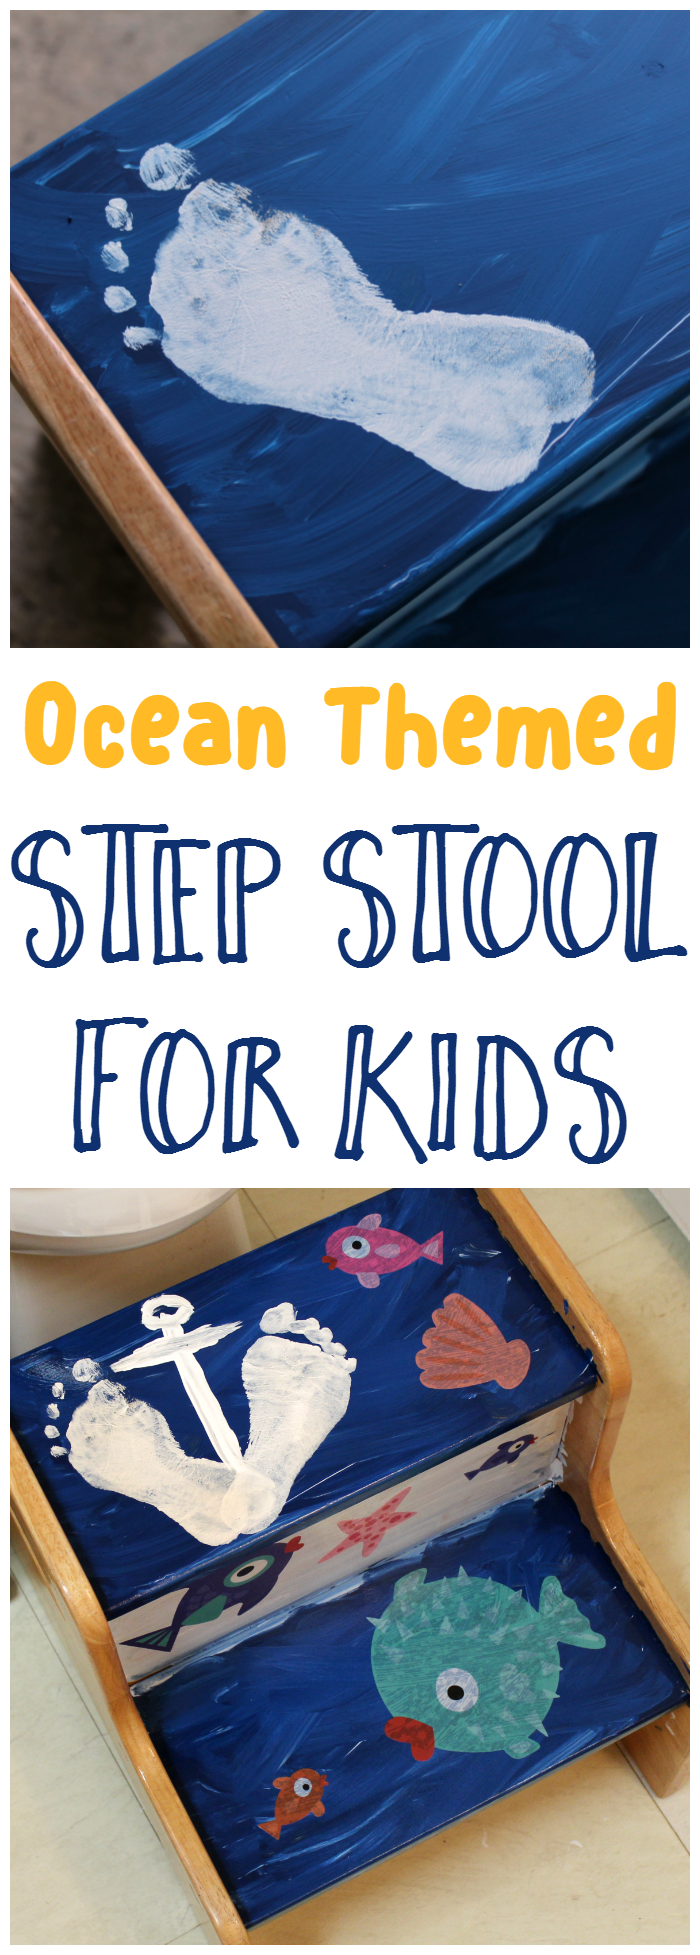 Ocean Themed Step Stool for Kids